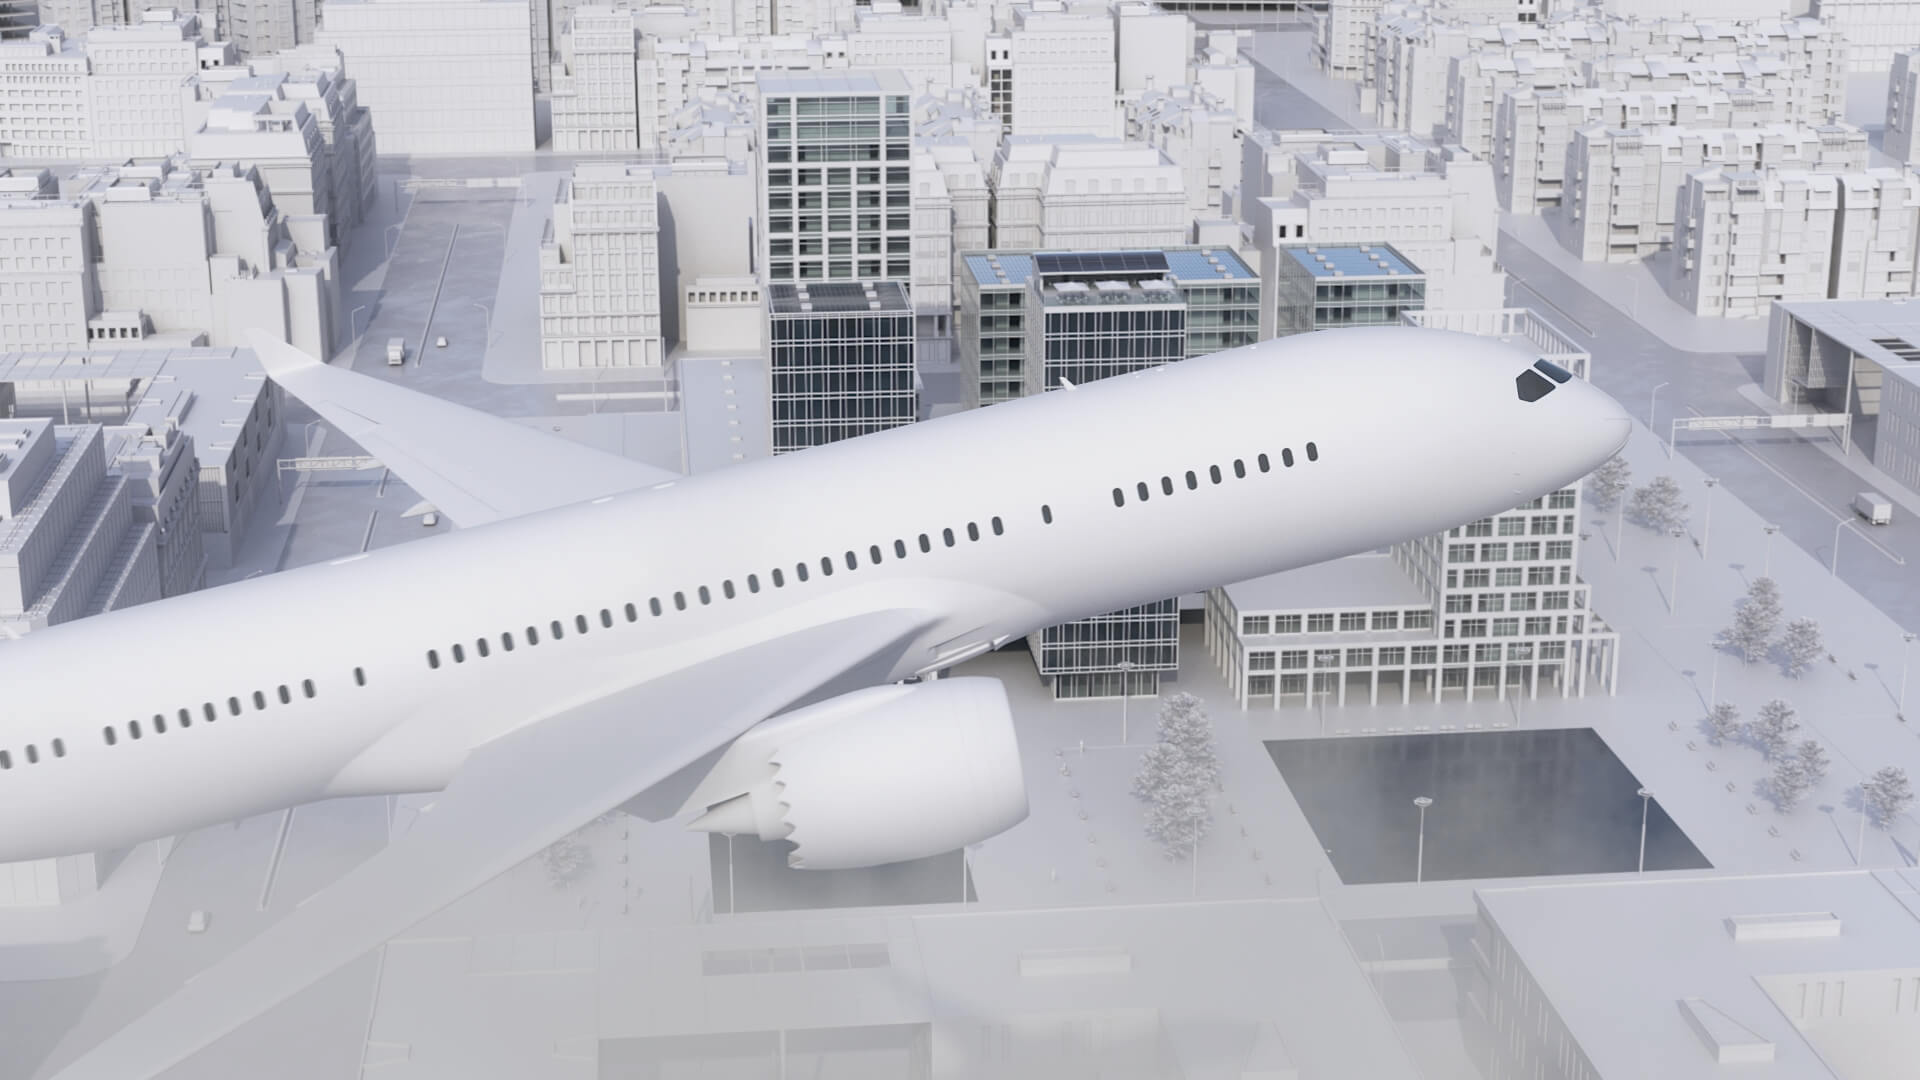 Plansee Thin Film 3D-Animation Smart Glass im Flugzeug